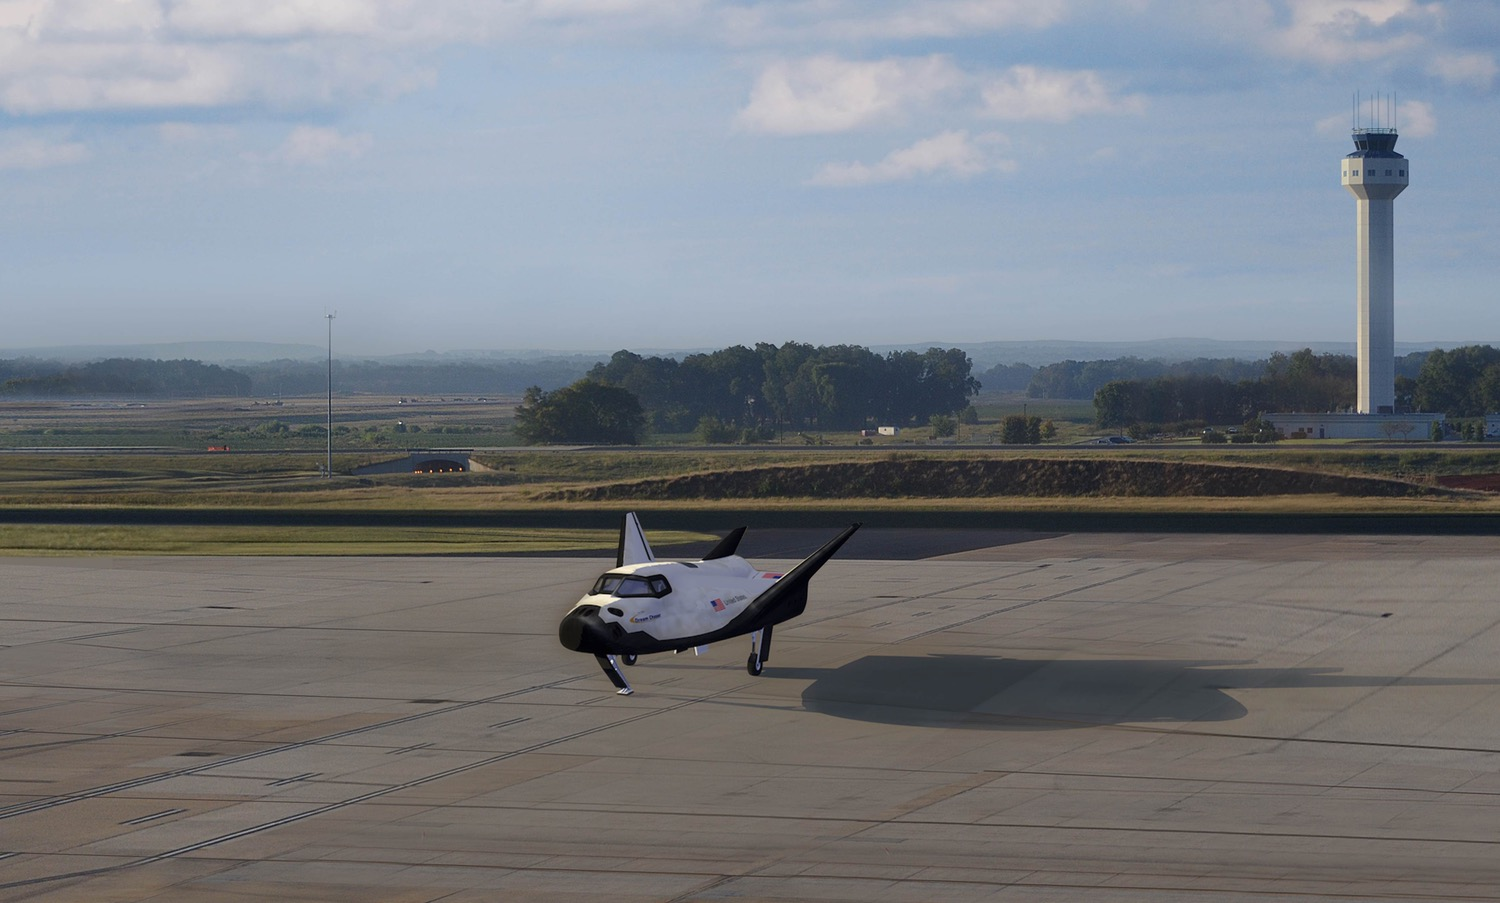 Dream Chaser at Huntsville airport